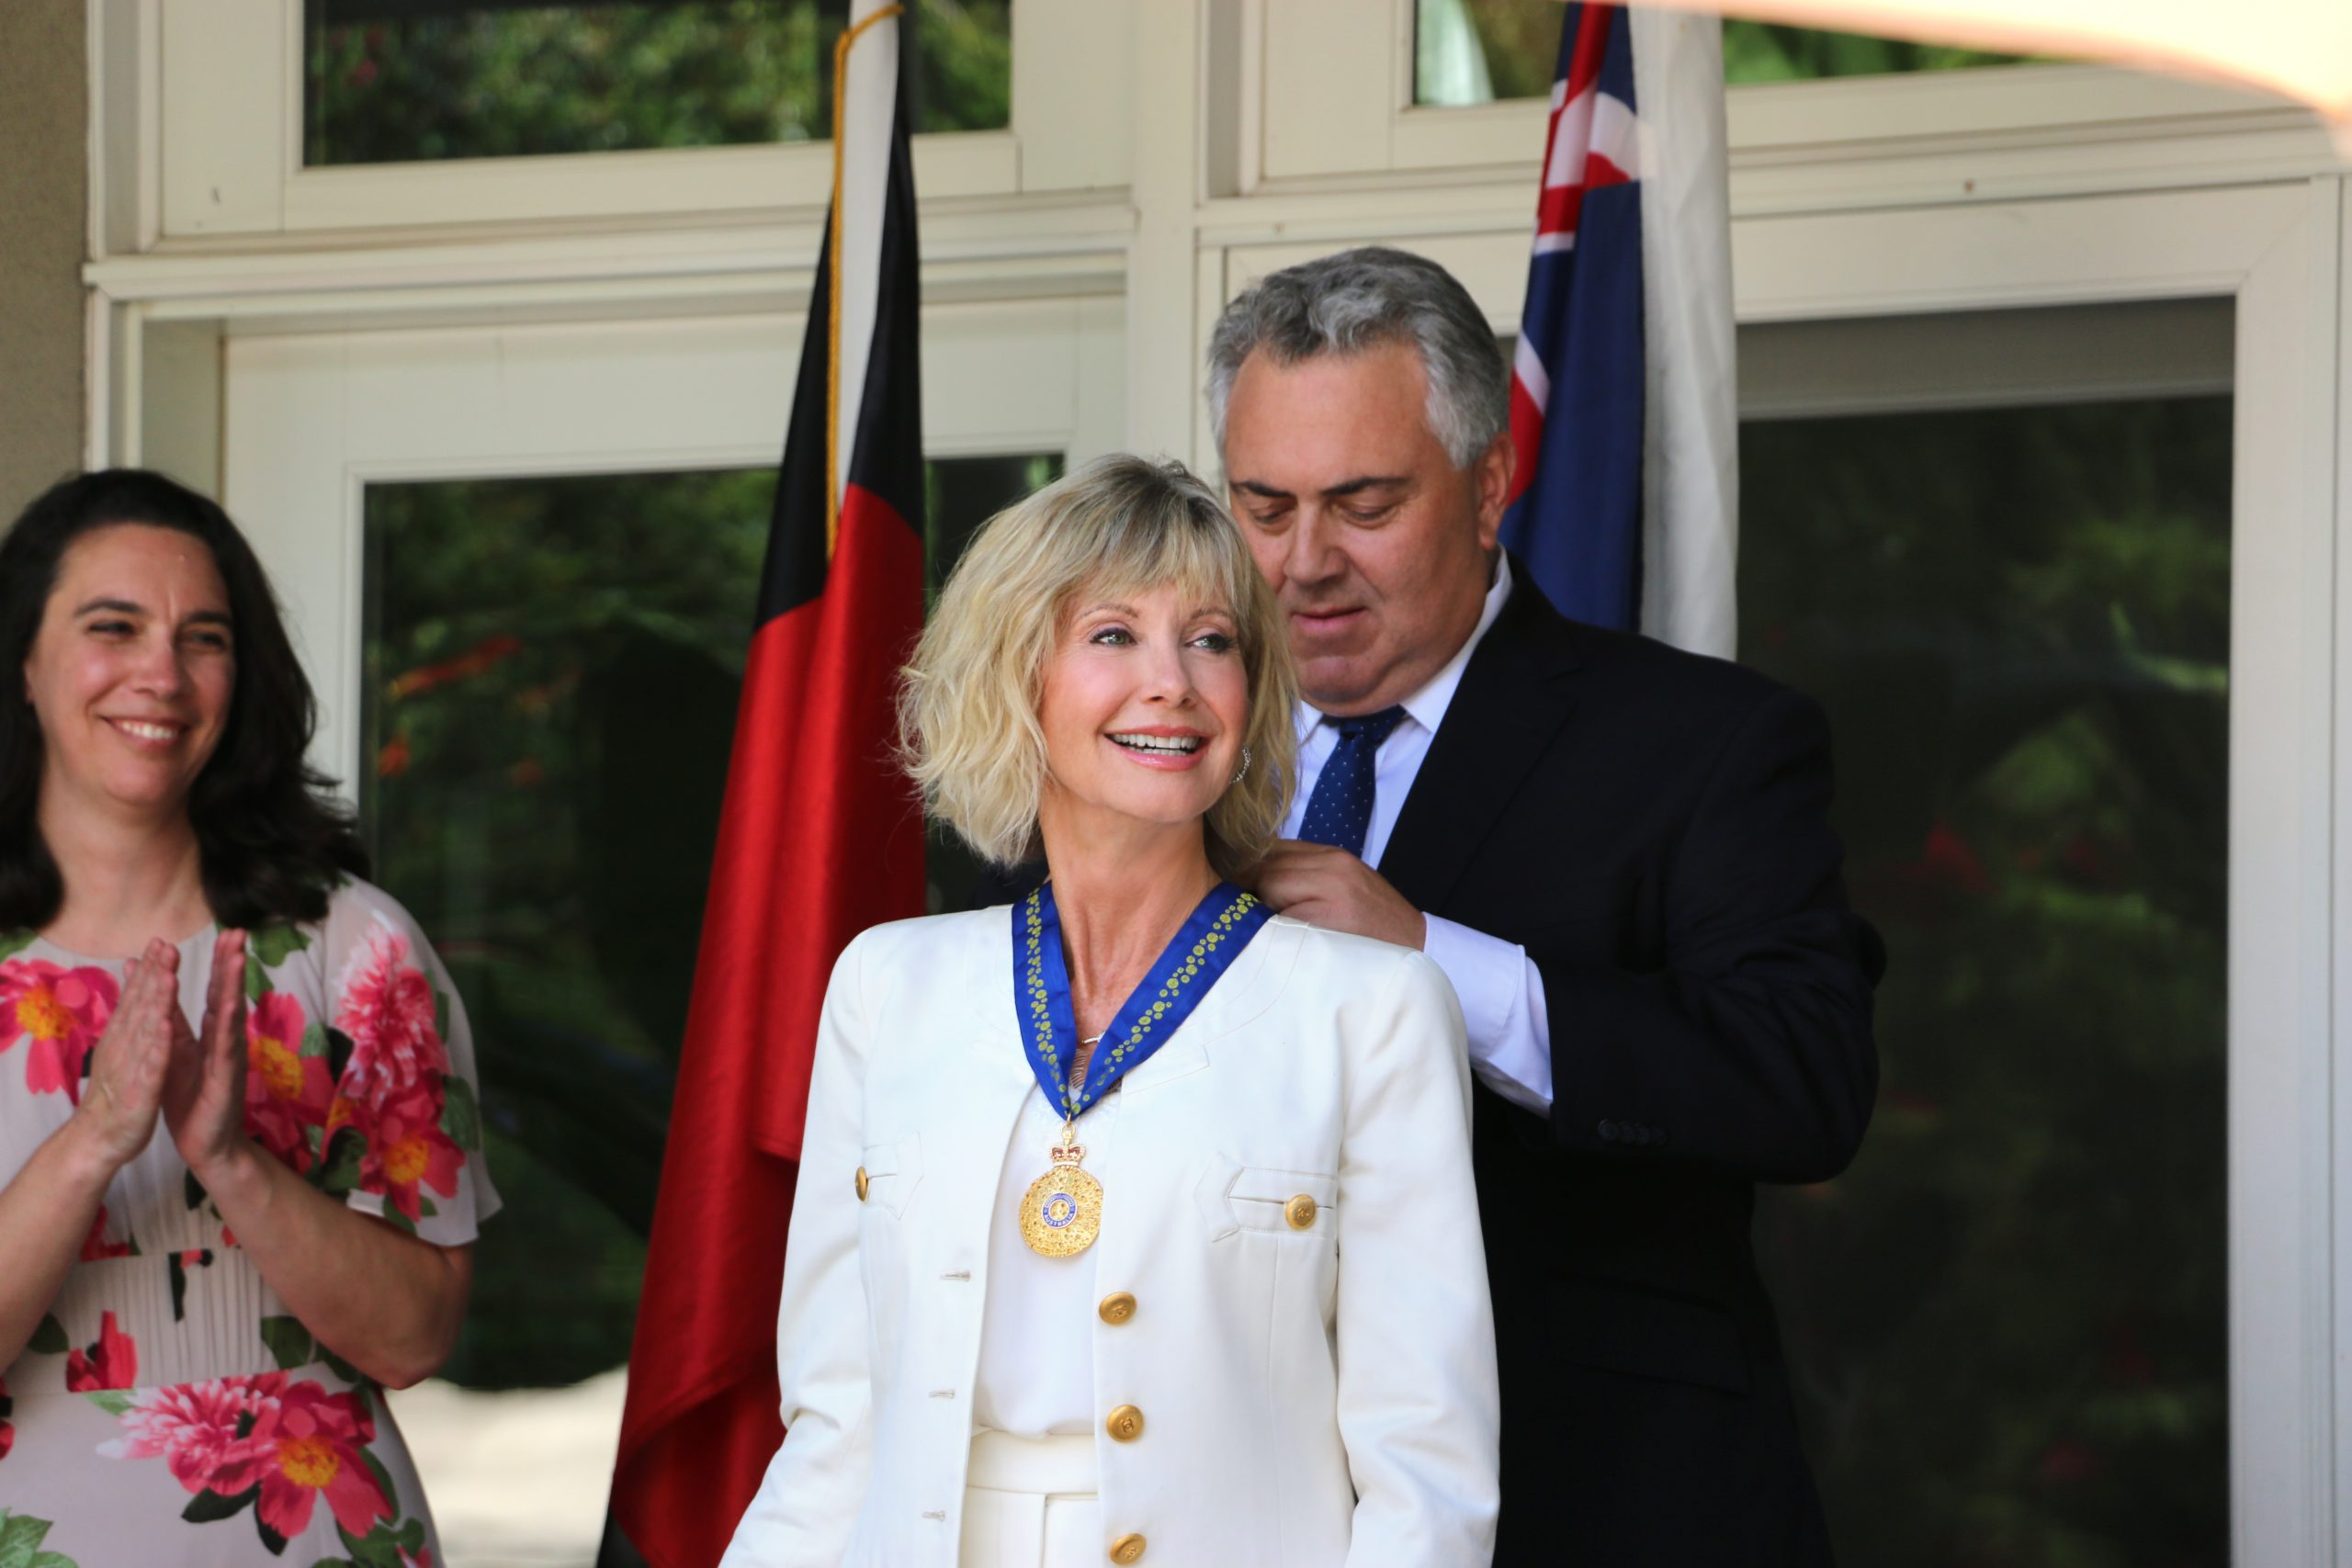 Companion to the Order of Australia, Olivia Newton-John 2019, Olivia Newton-John Los Angeles 2019